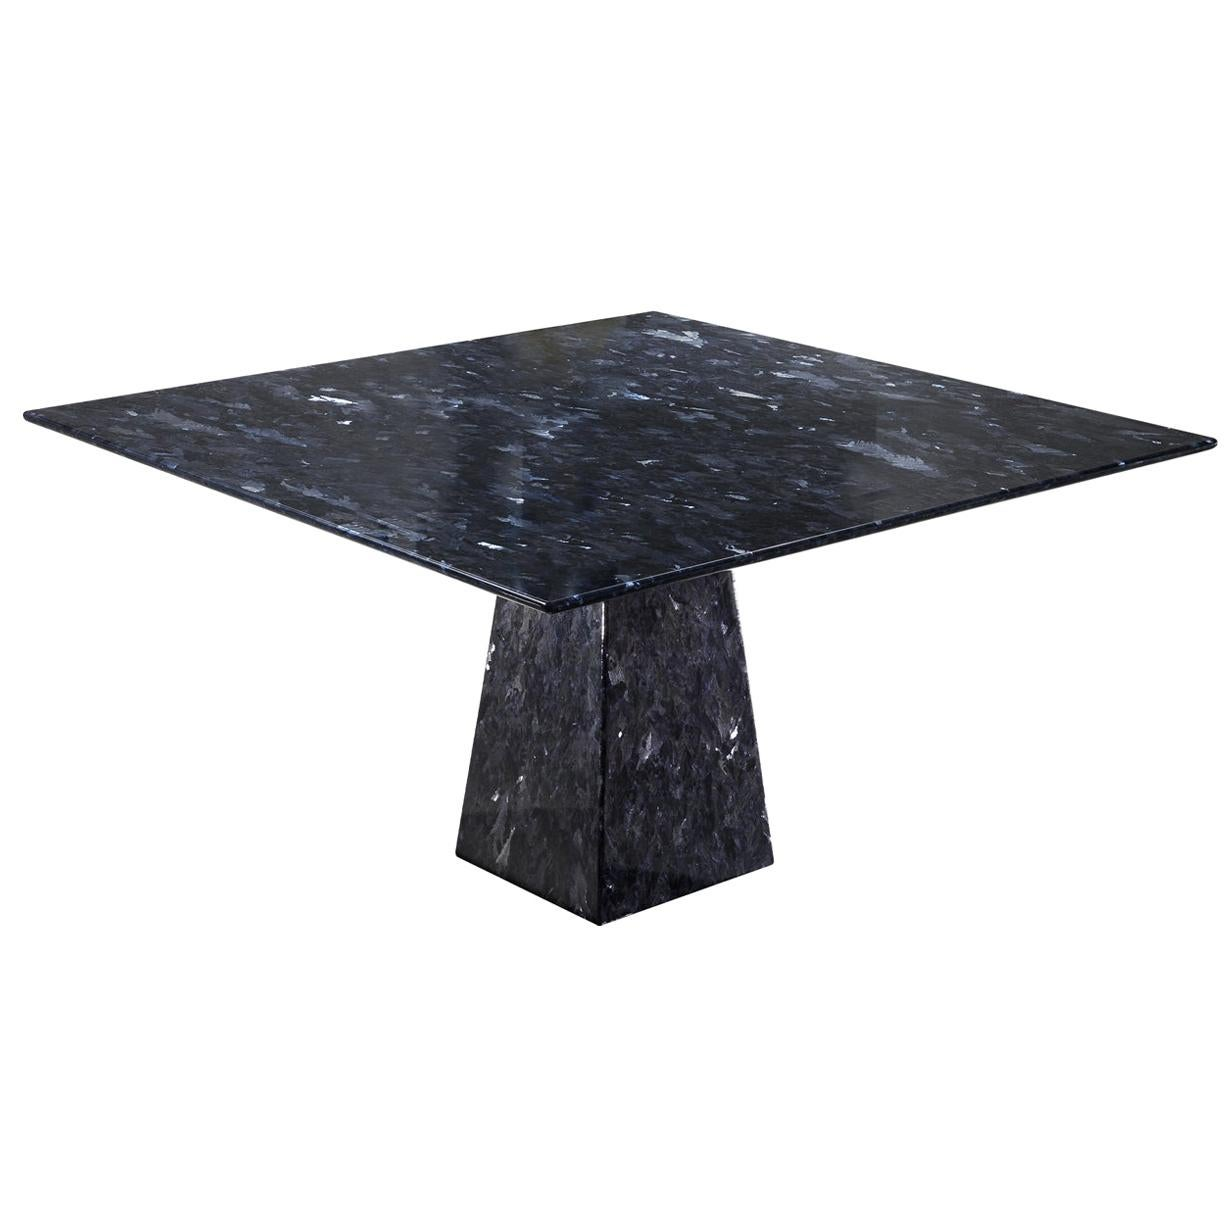 Tuareg Square Dining Table